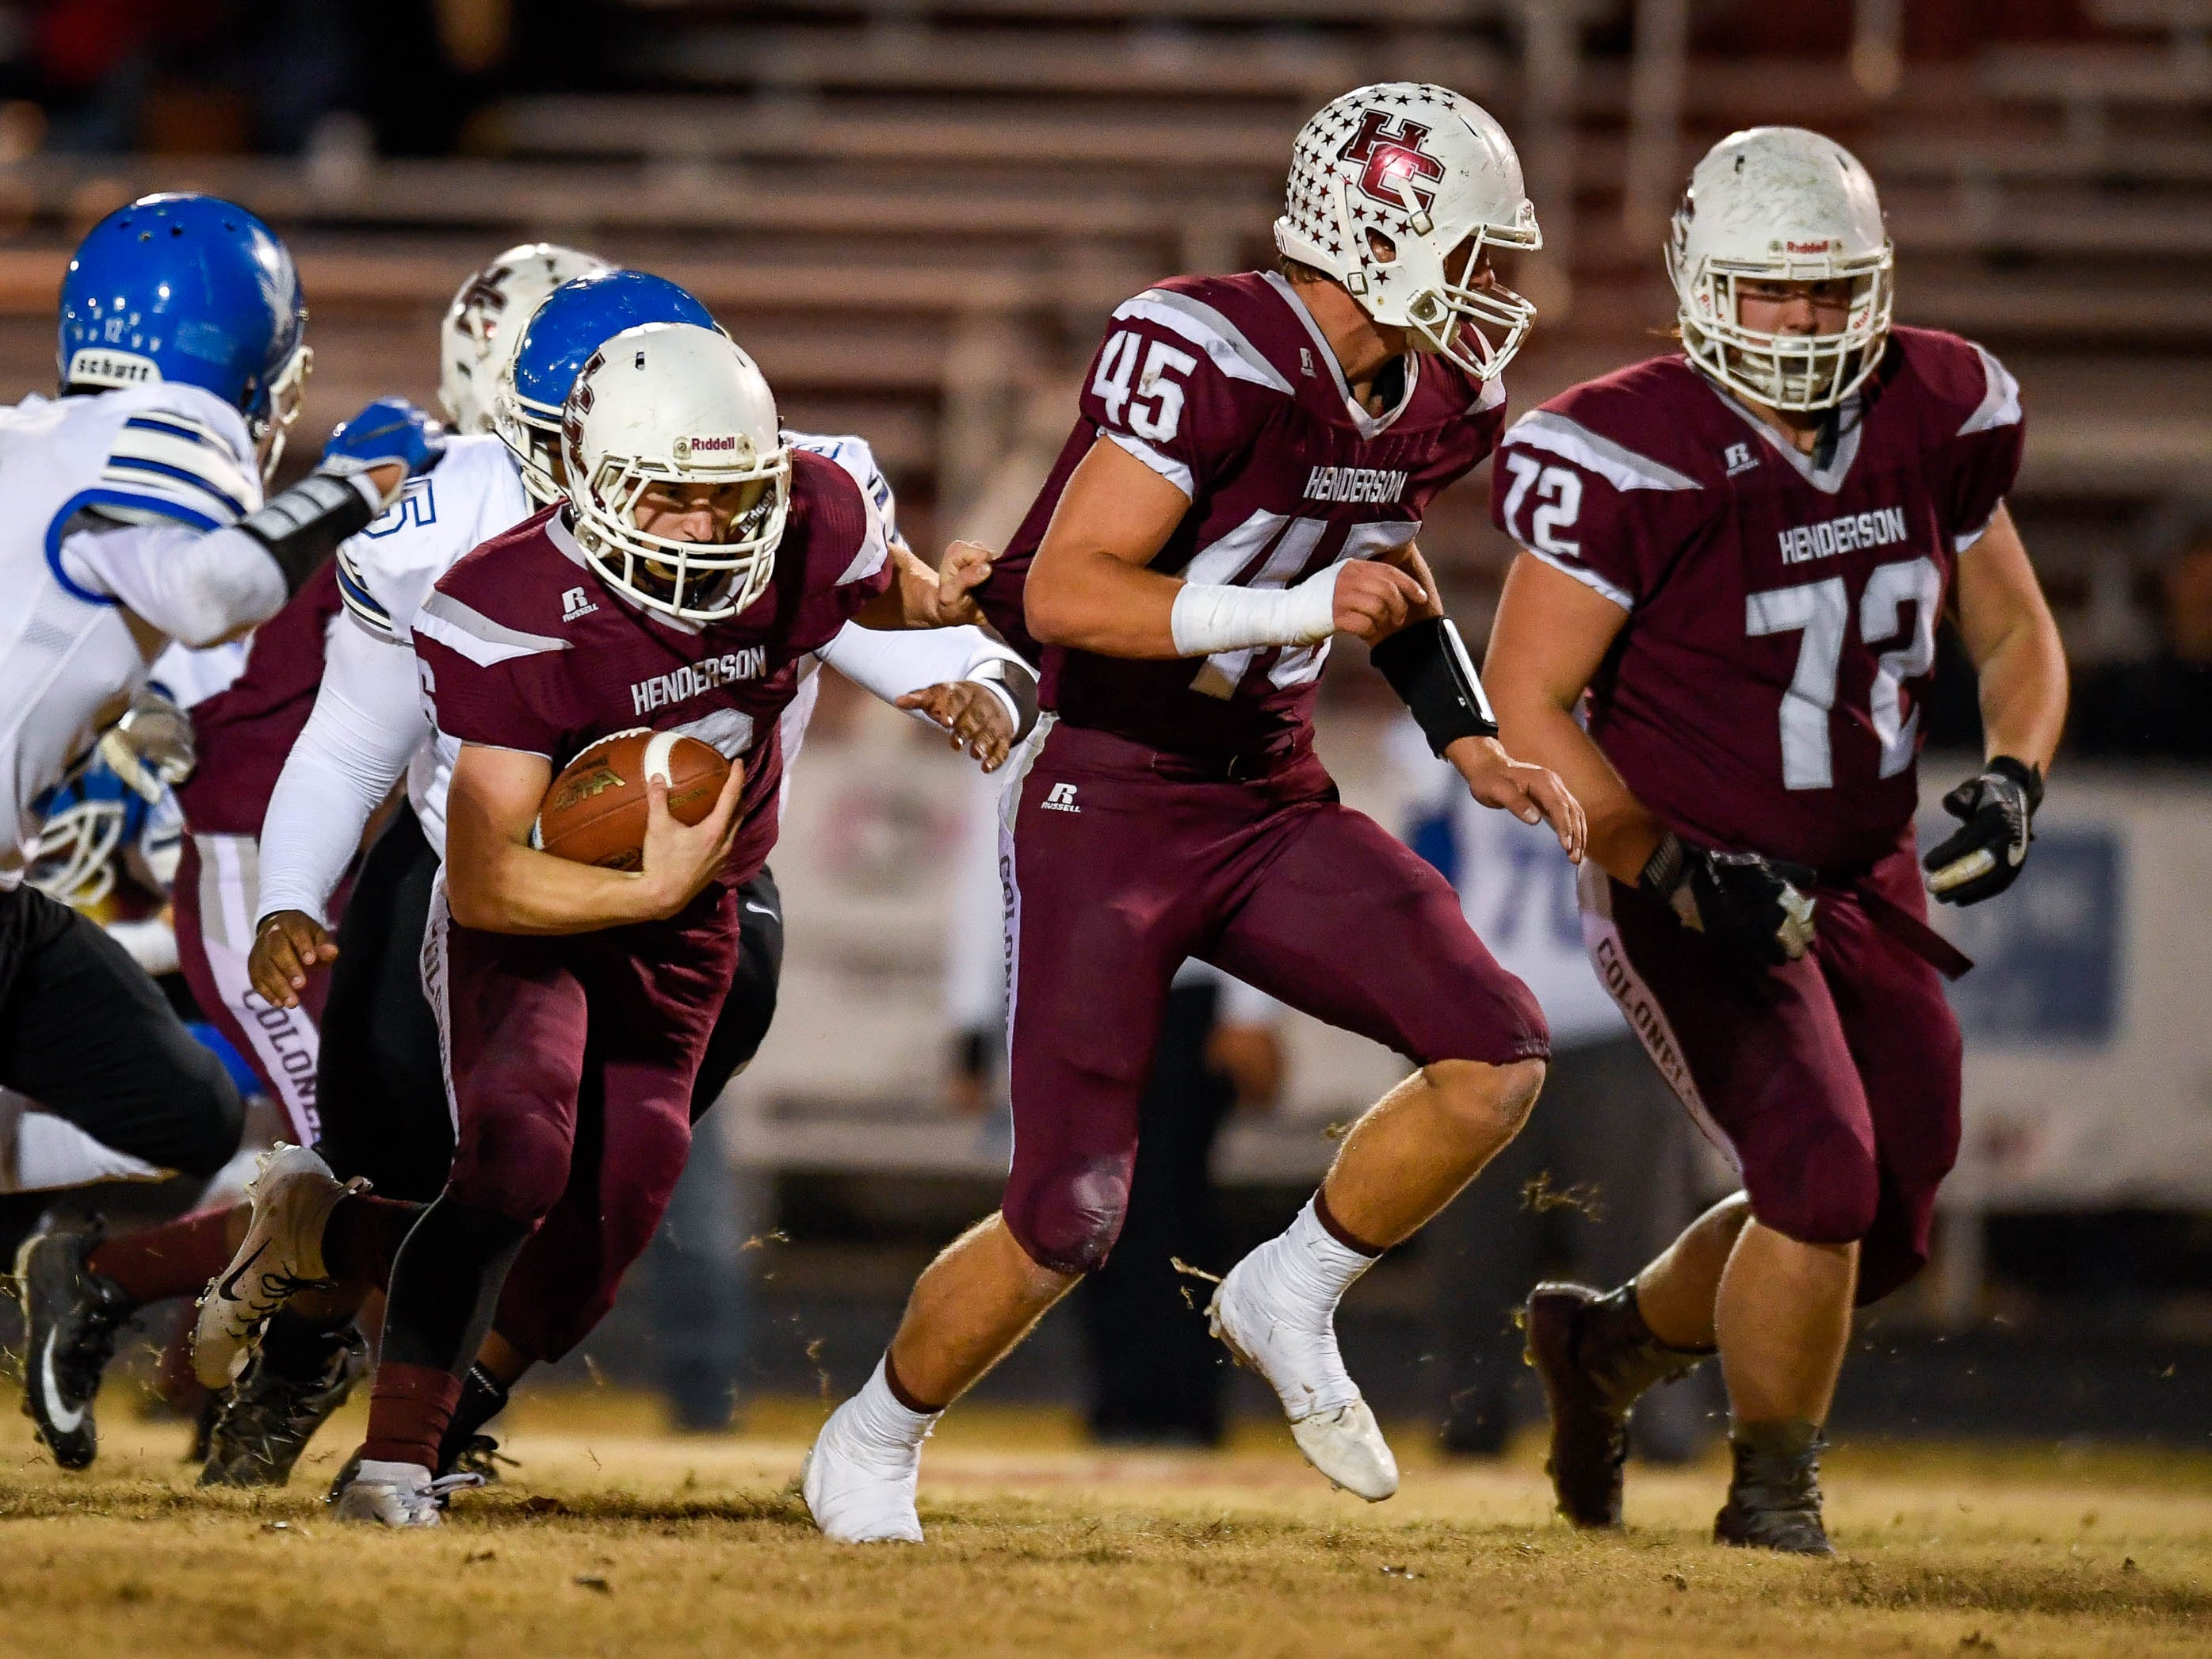 Henderson's Logan Green (6) runs behind blocking from Ian Pitt (45) as the Henderson County Colonels play the Louisville Eastern Eagles in the first round of the 6-A playoffs at Colonel Field Friday, November 2, 2018.